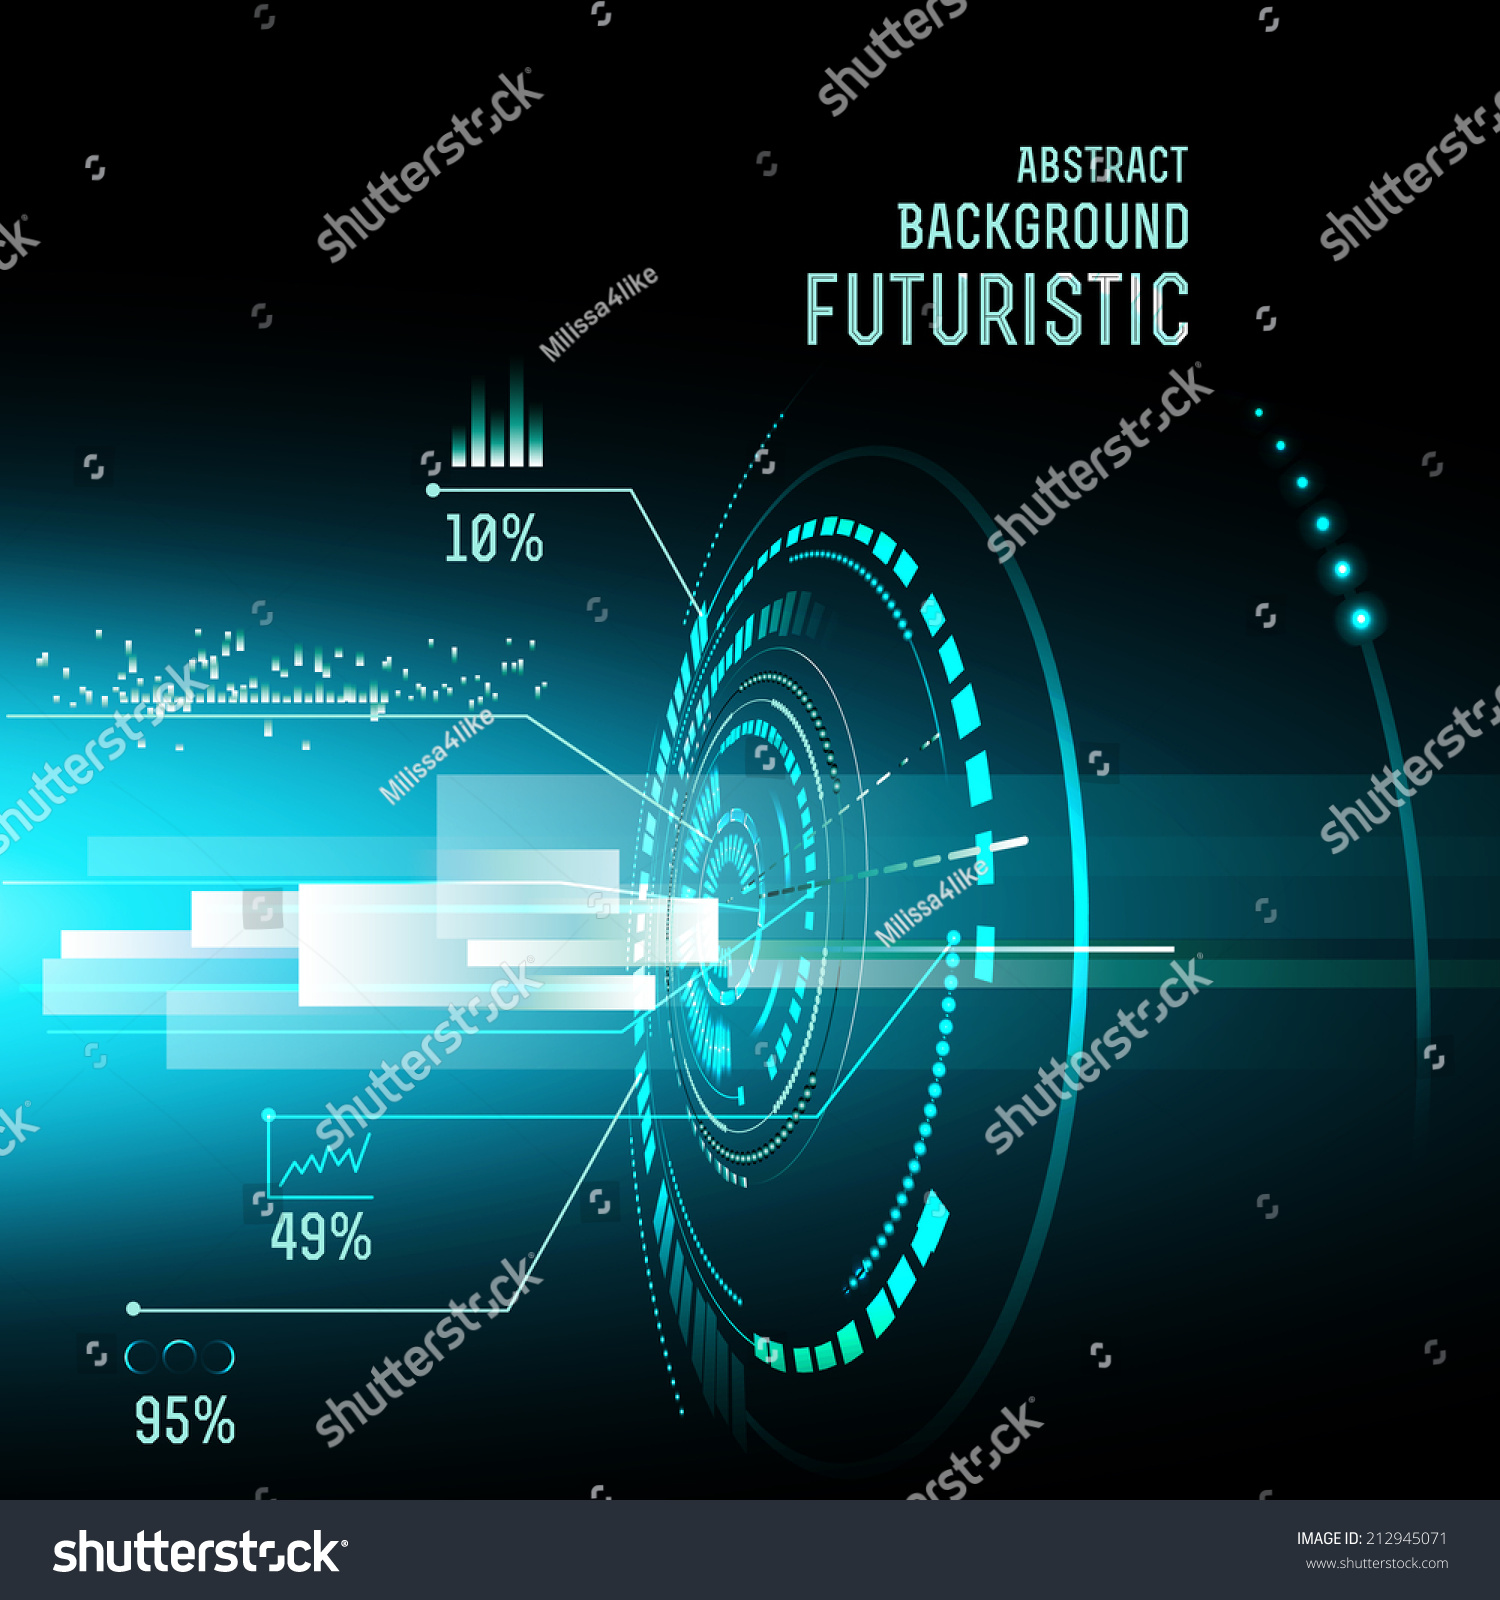 futuristic vector background - photo #20